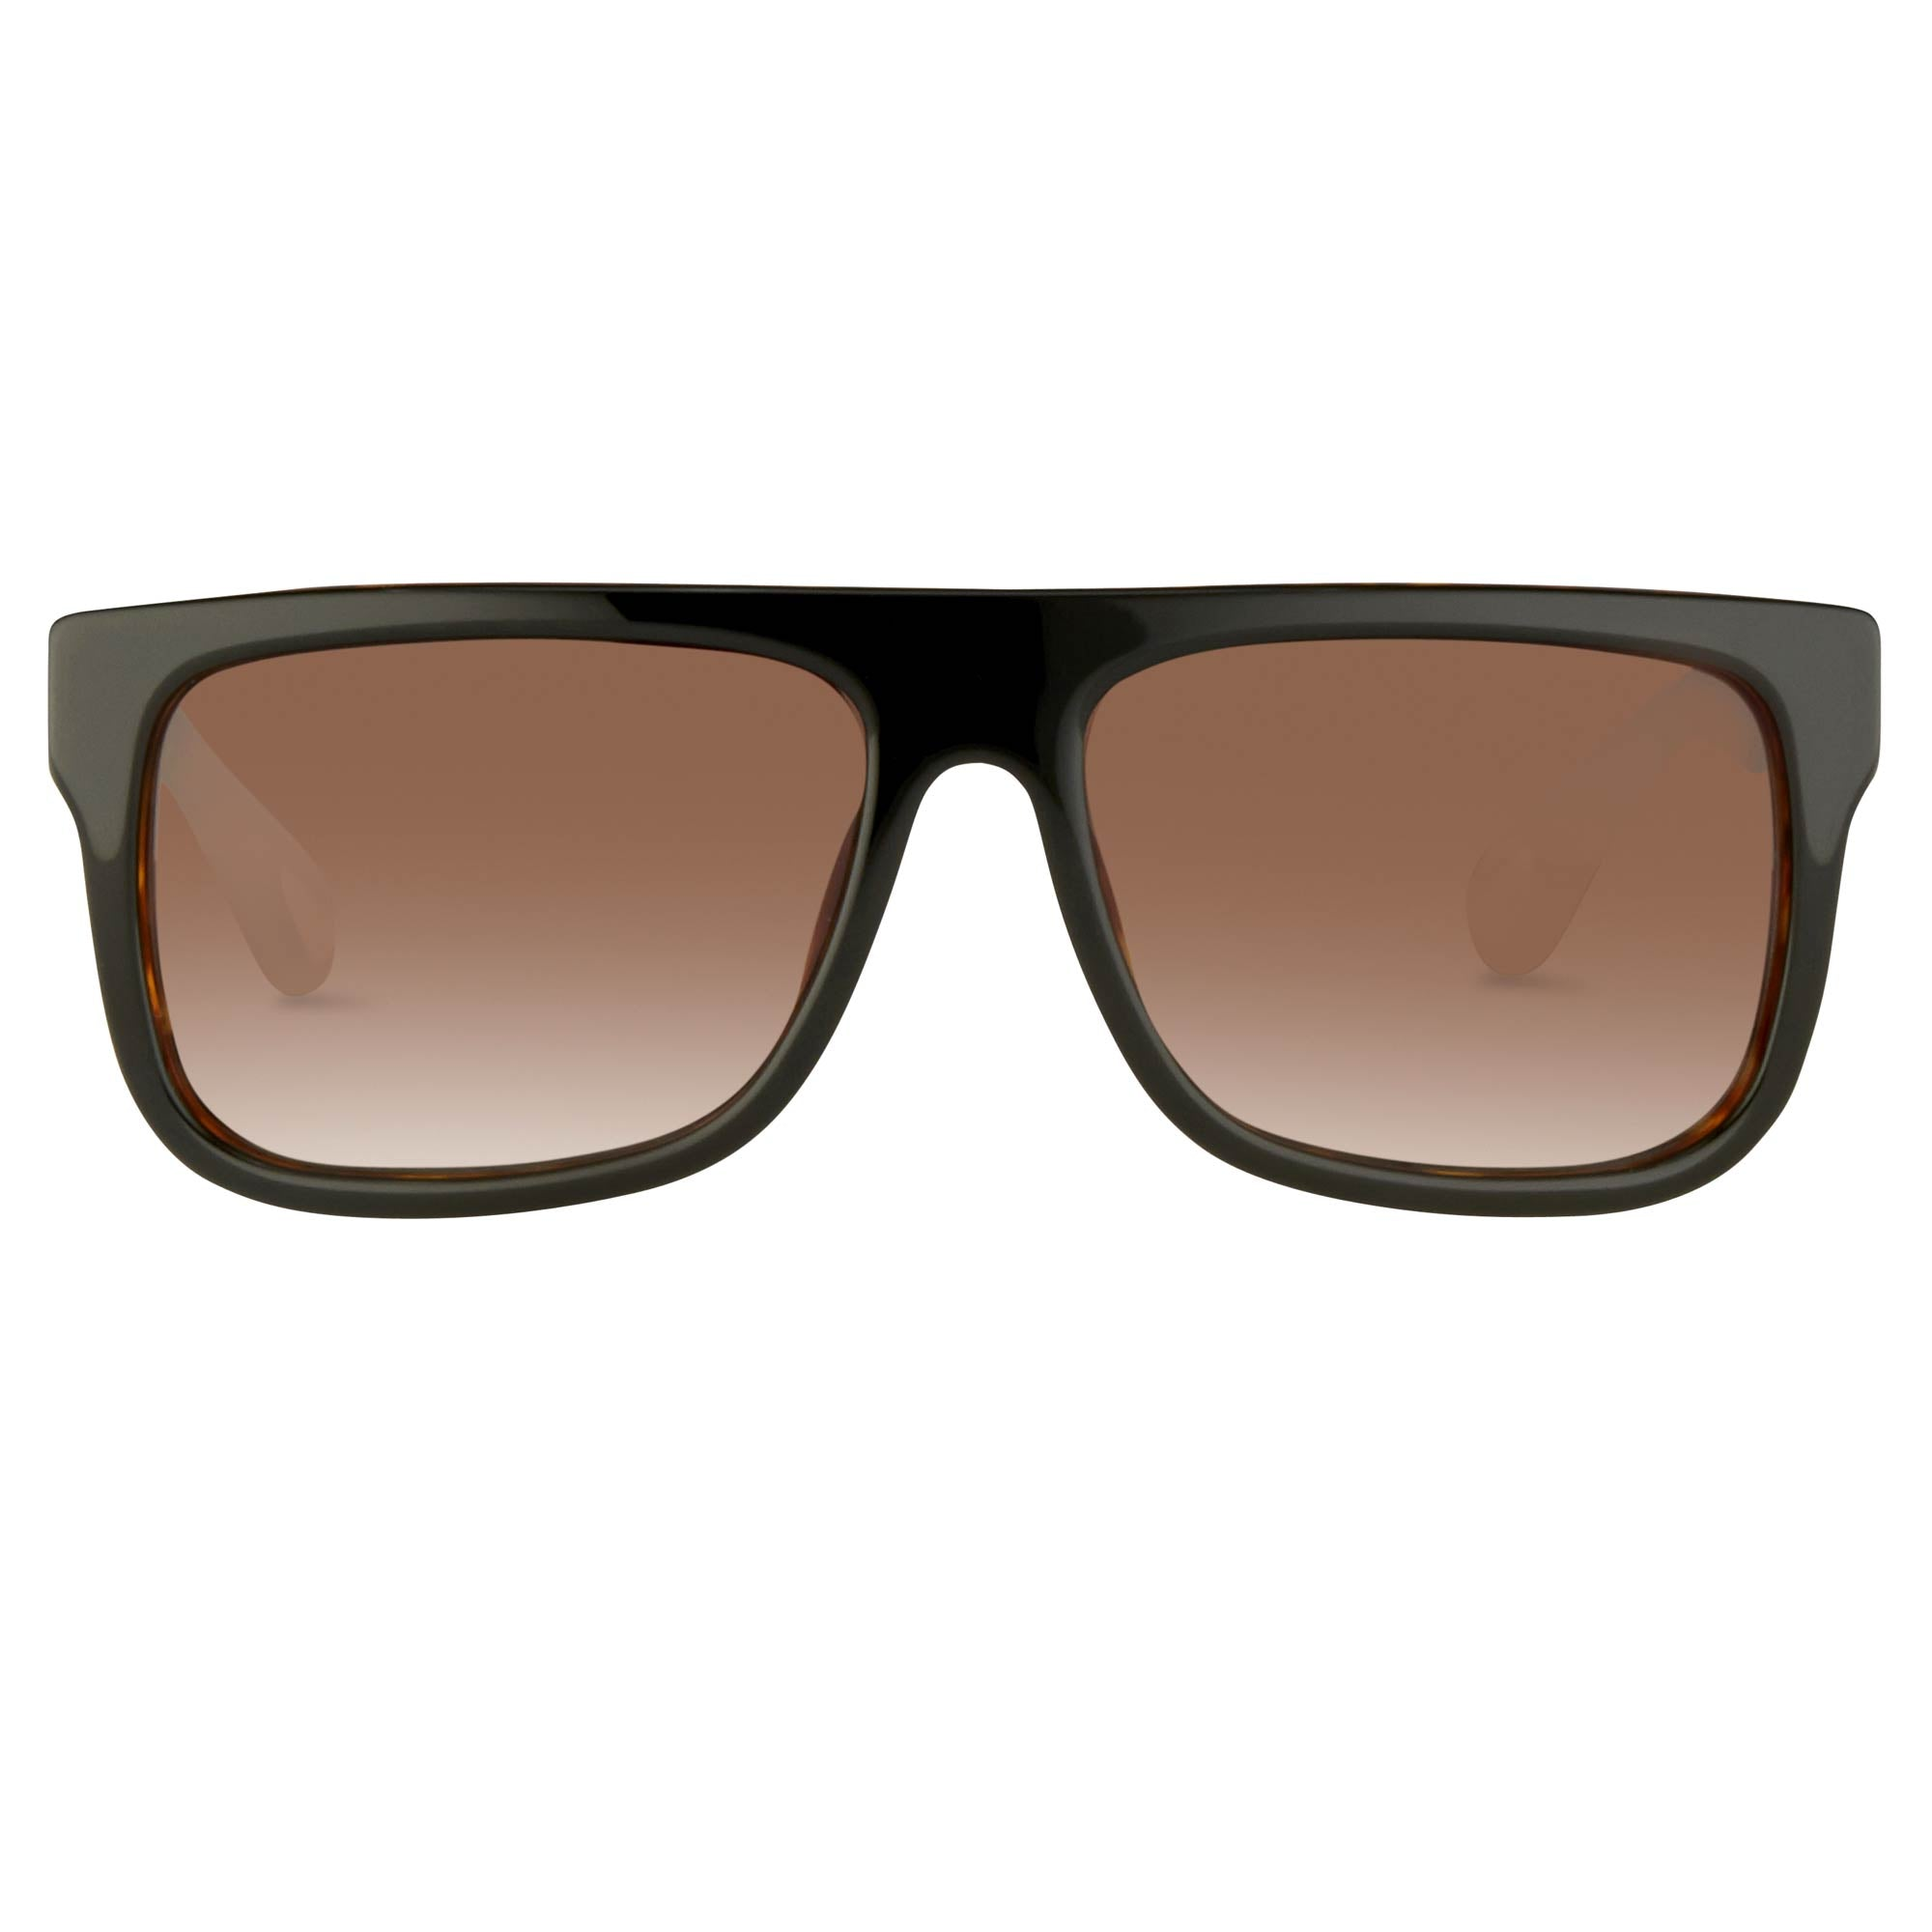 Ann Demeulemeester Sunglasses Flat Top Black Tortoise Shell 925 Silver with Brown Lenses AD2C6SUN - Watches & Crystals